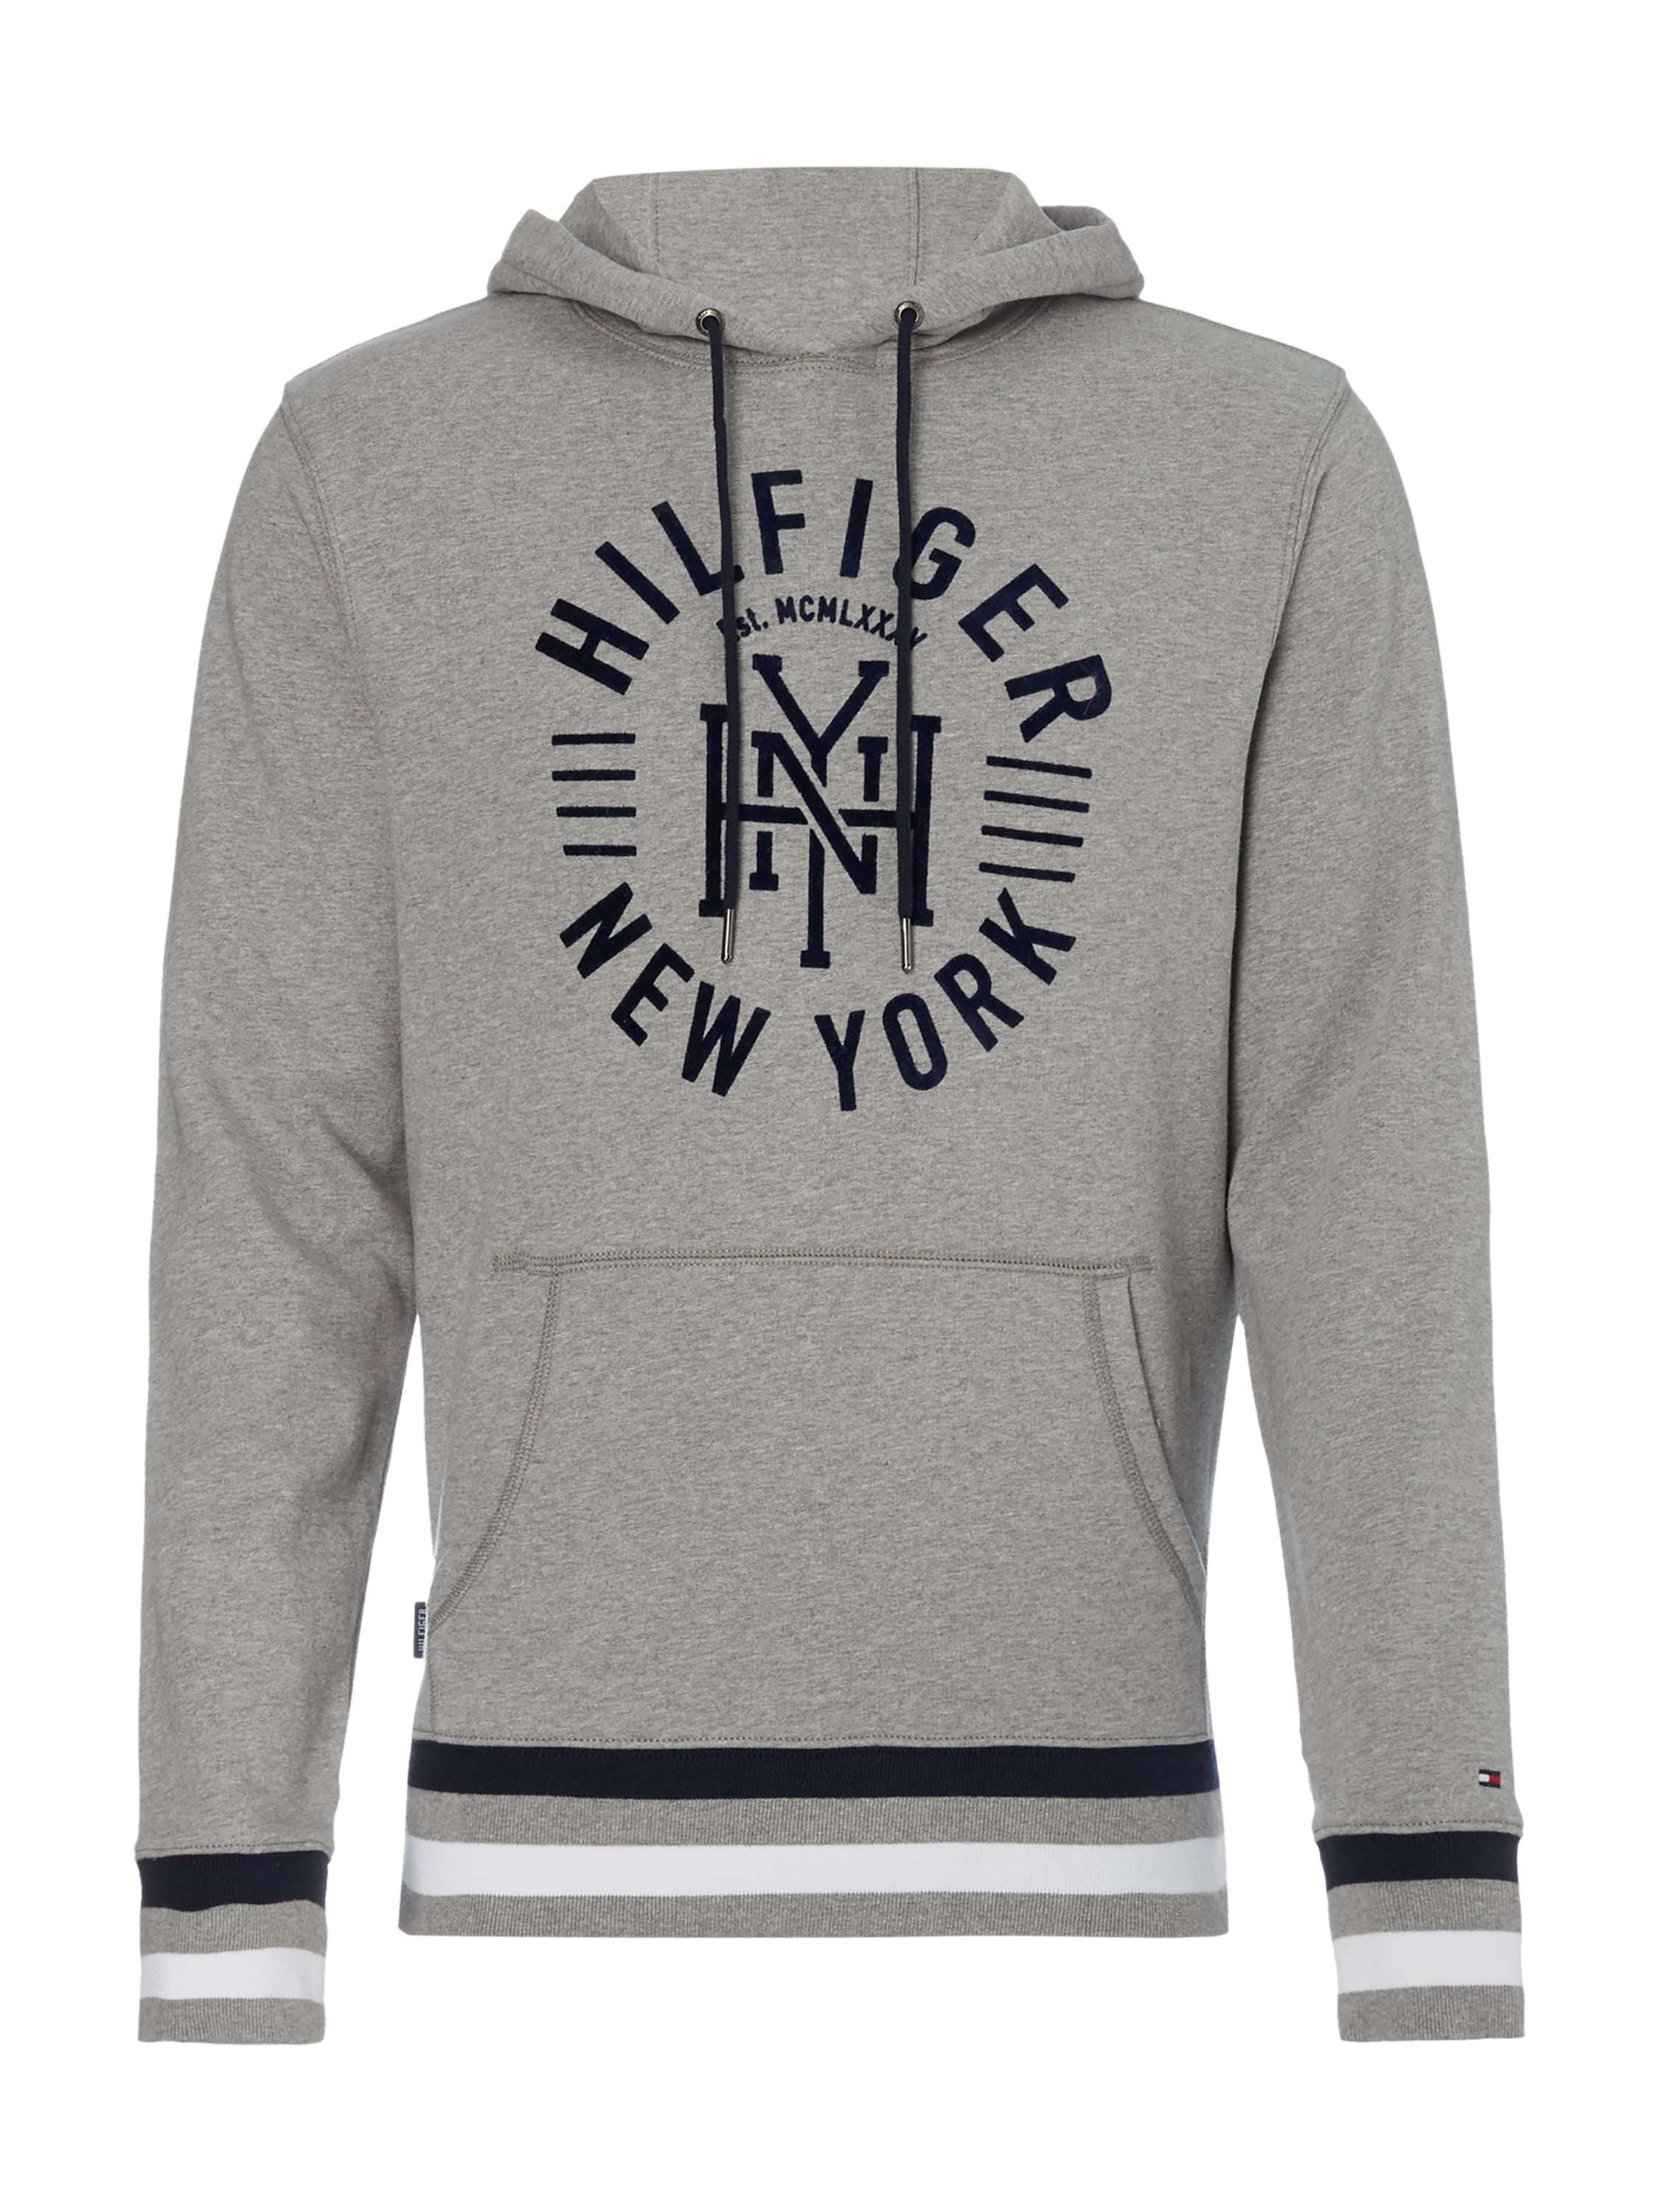 tommy hilfiger hoodie mit logo print in grau schwarz online kaufen 9554511 p c online shop. Black Bedroom Furniture Sets. Home Design Ideas